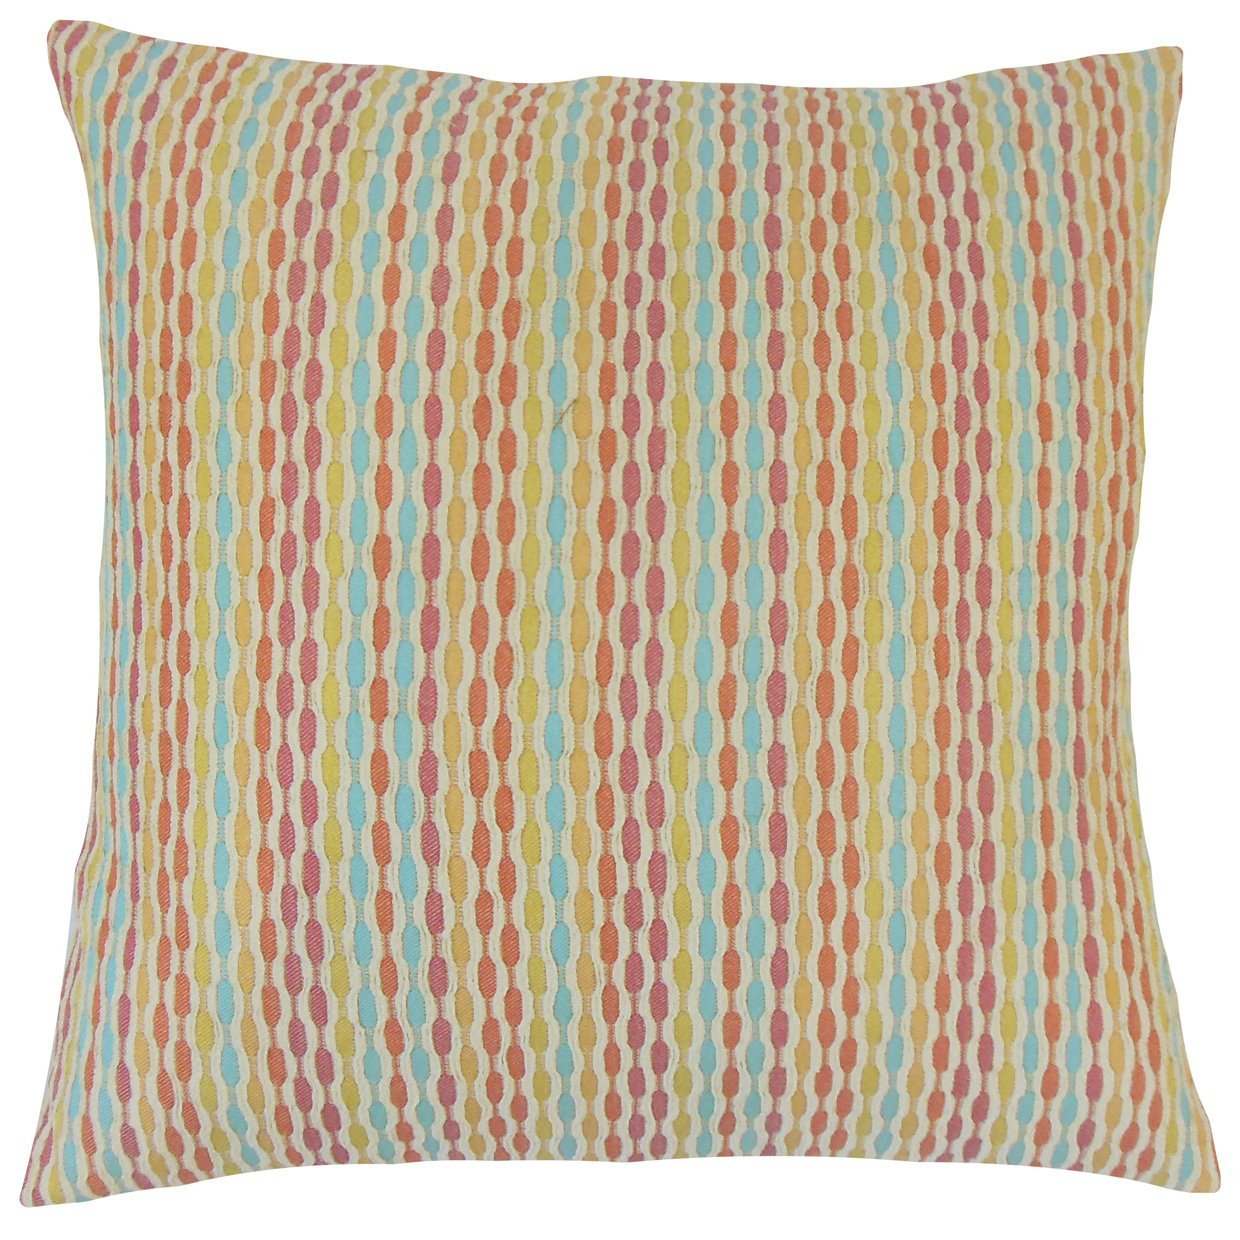 Multi Synthetic Striped Contemporary Throw Pillow Cover